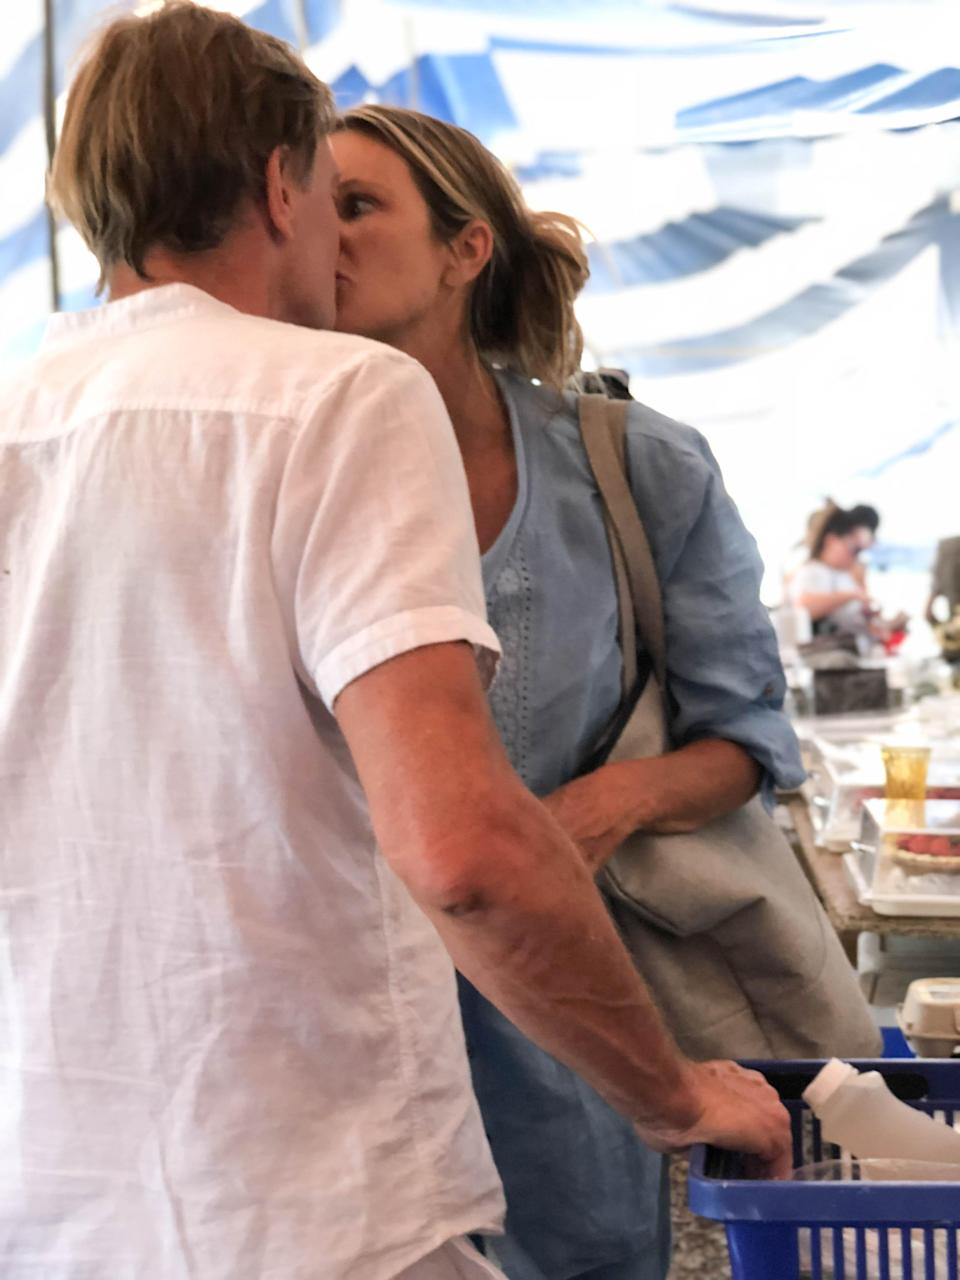 Elle Macpherson was photographed kissing ex-doctor Andrew Wakefield, who lost his medical license due to false claims that the MMR vaccine causes autism. (Photo: Splash News)